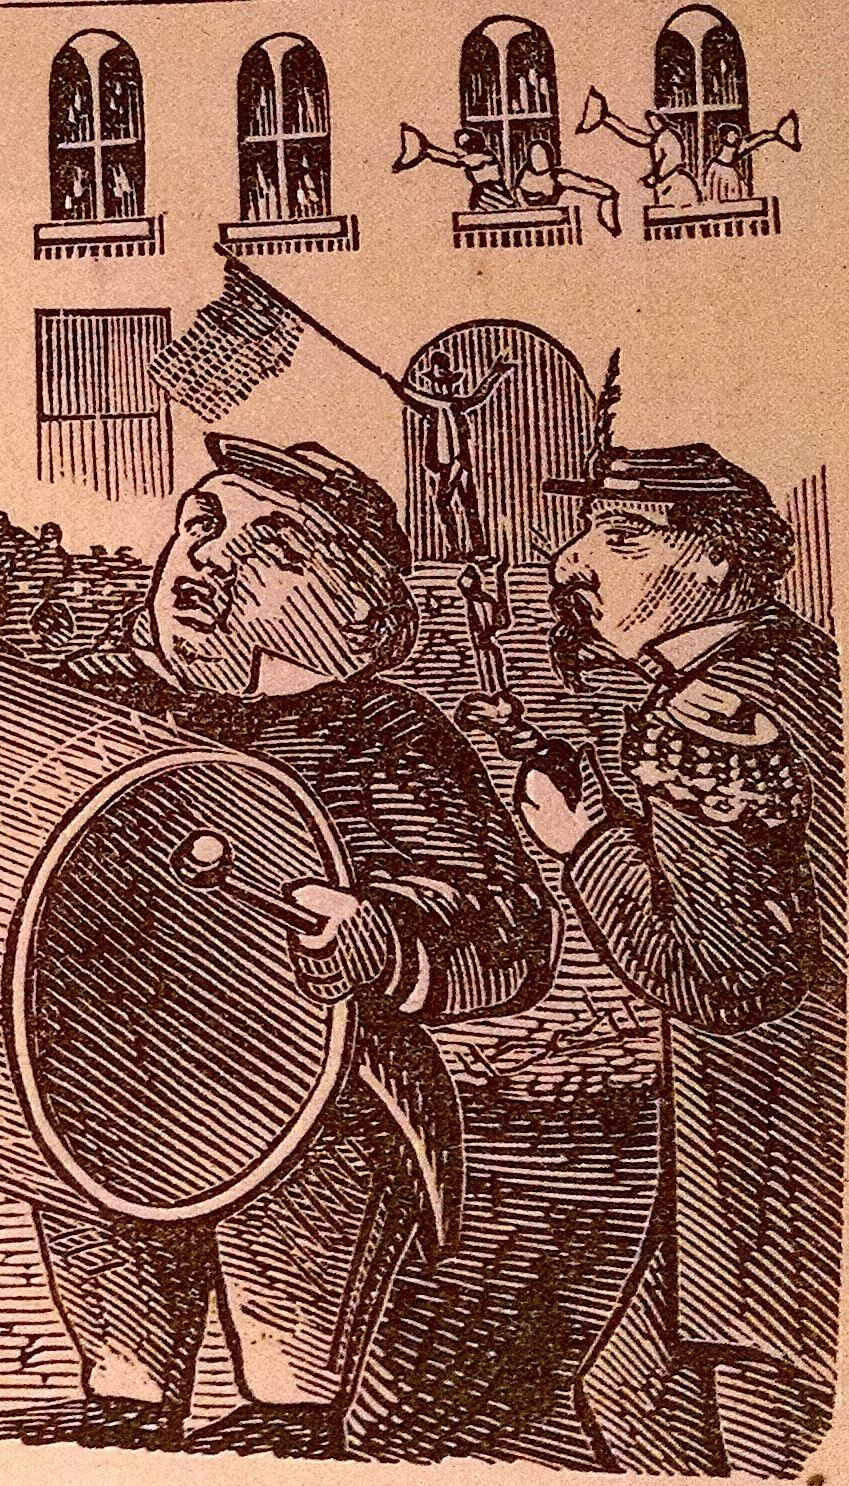 Detail of a comic, 1871, that appeared in the California Mail Bag magazine. Source: Internet Archive.